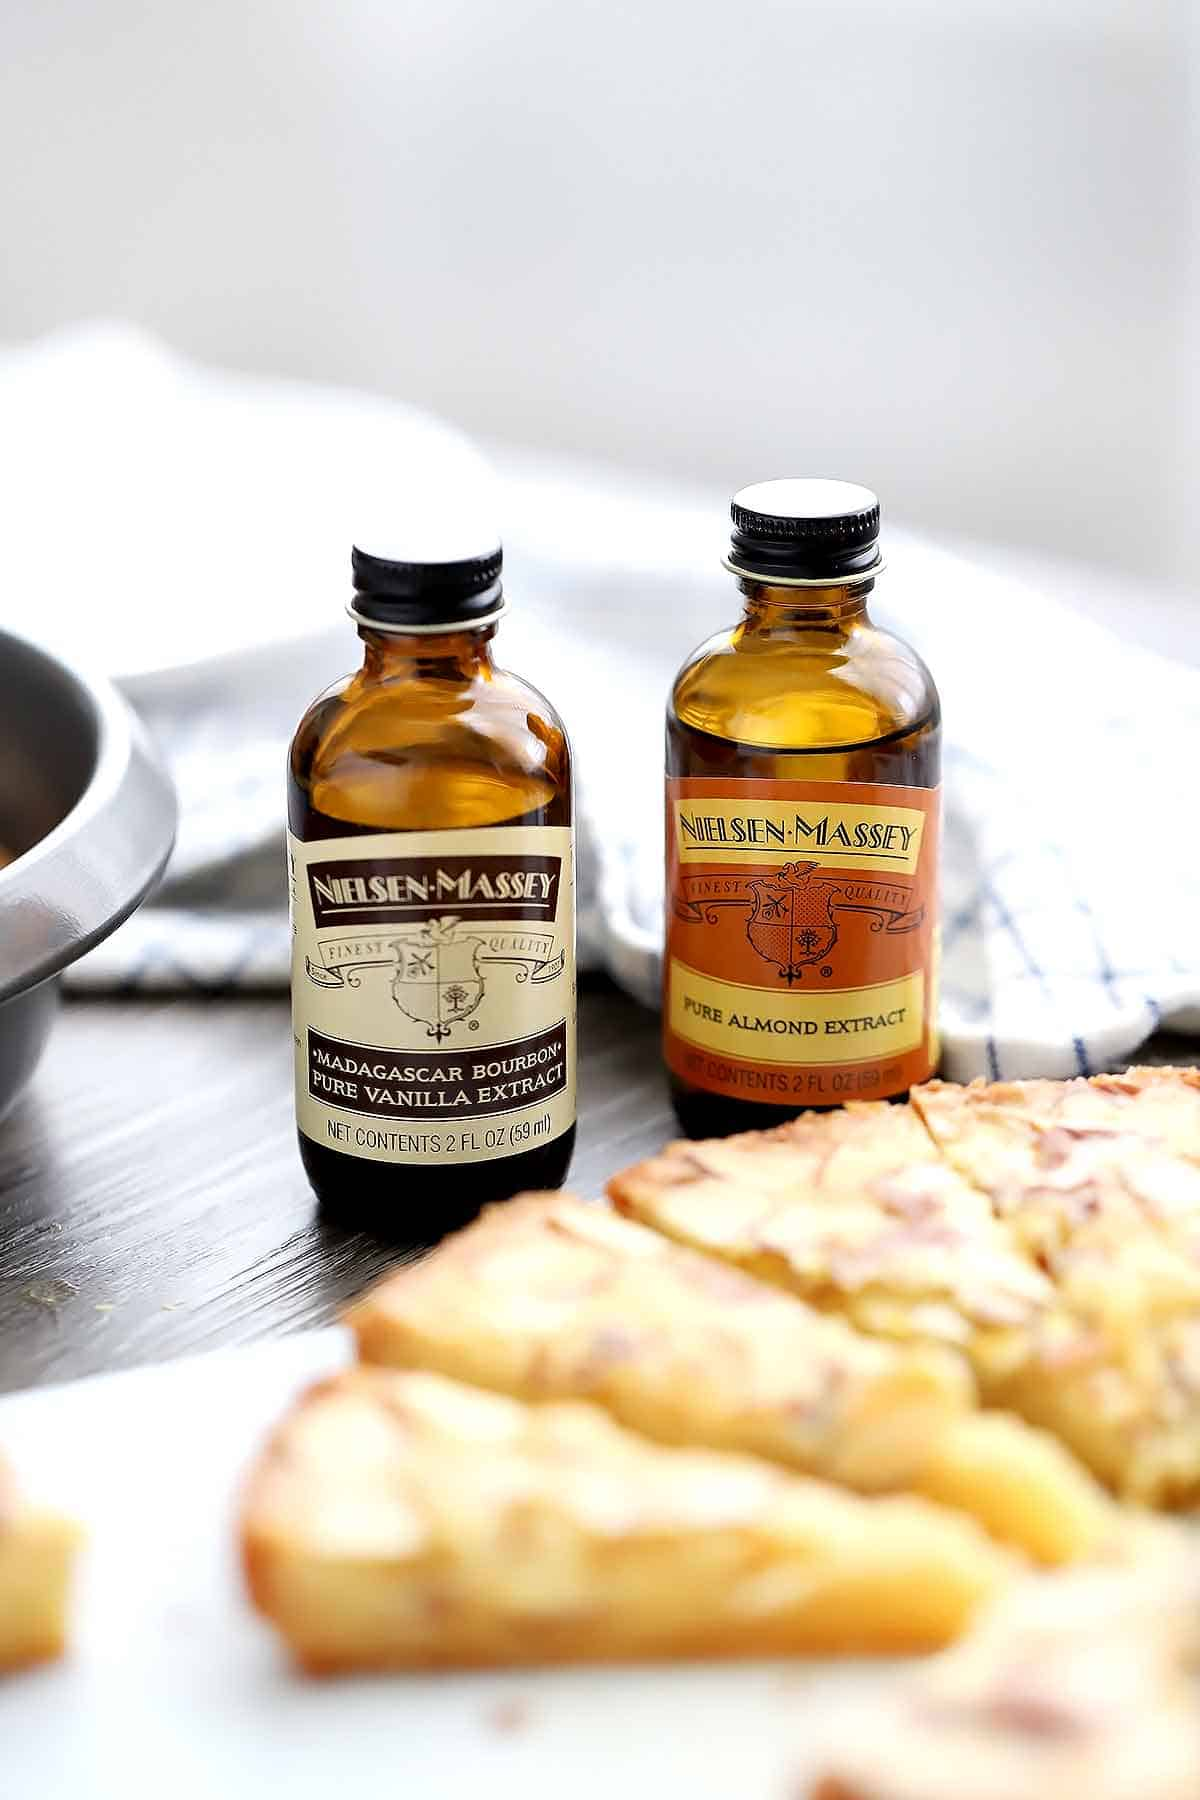 Bottles of Nielsen-Massey Pure Almond Extract and Madagascar Bourbon Vanilla Extract with a butter cake.